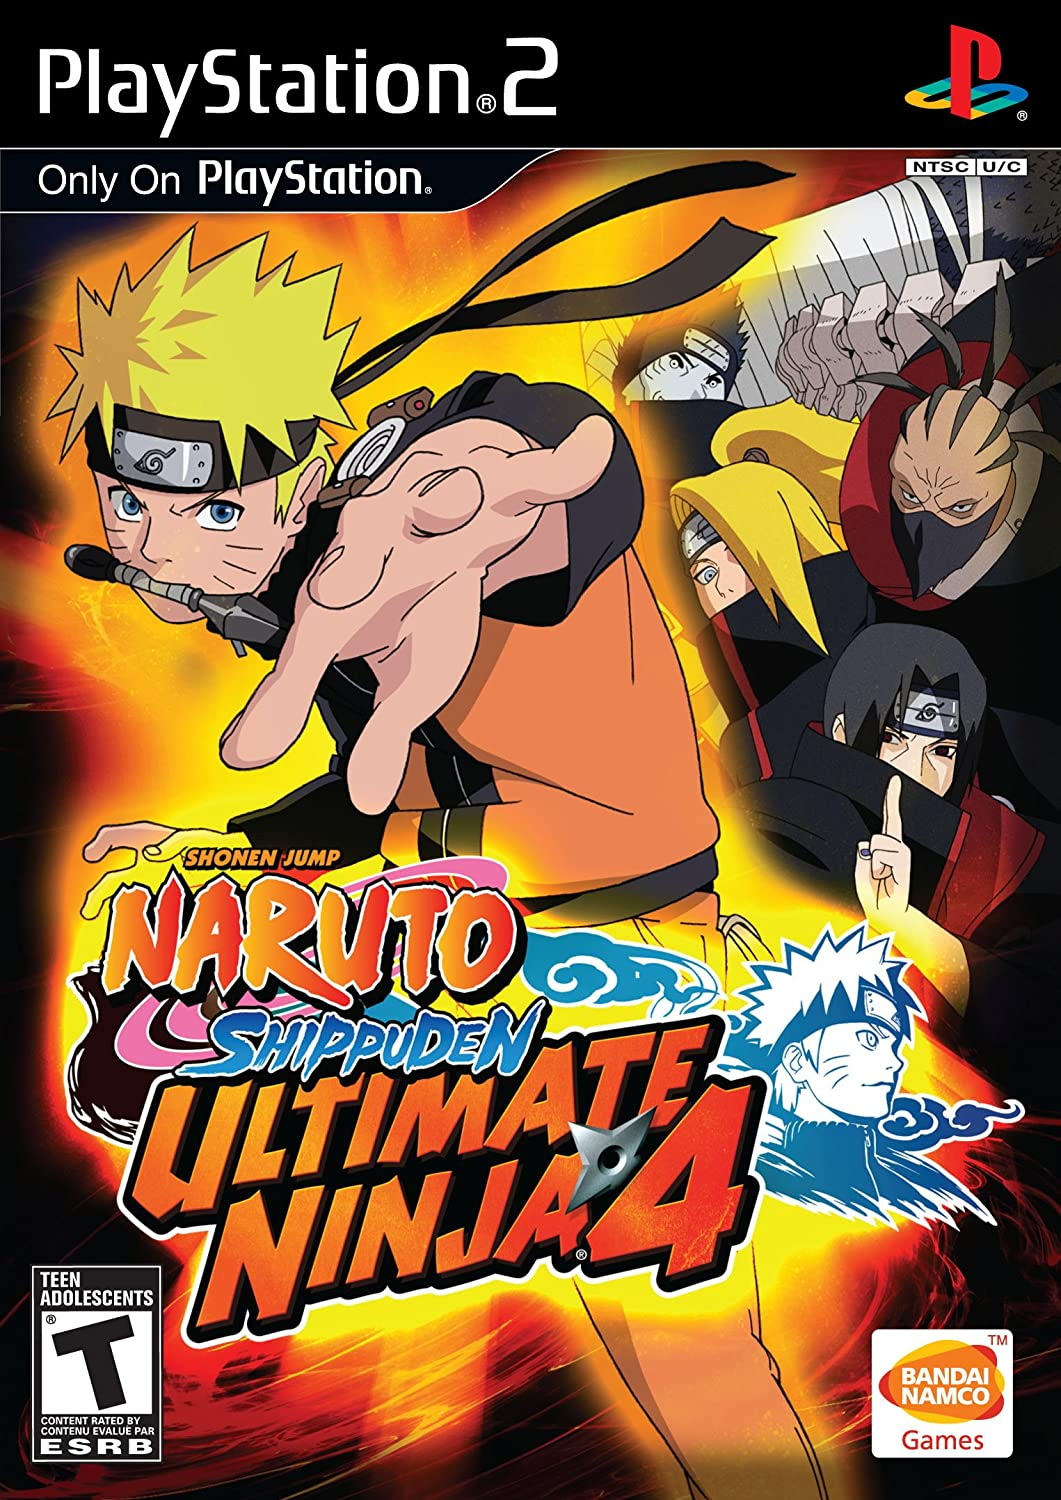 Ultimate Ninja 4: Naruto Shippuden - PlayStation 2